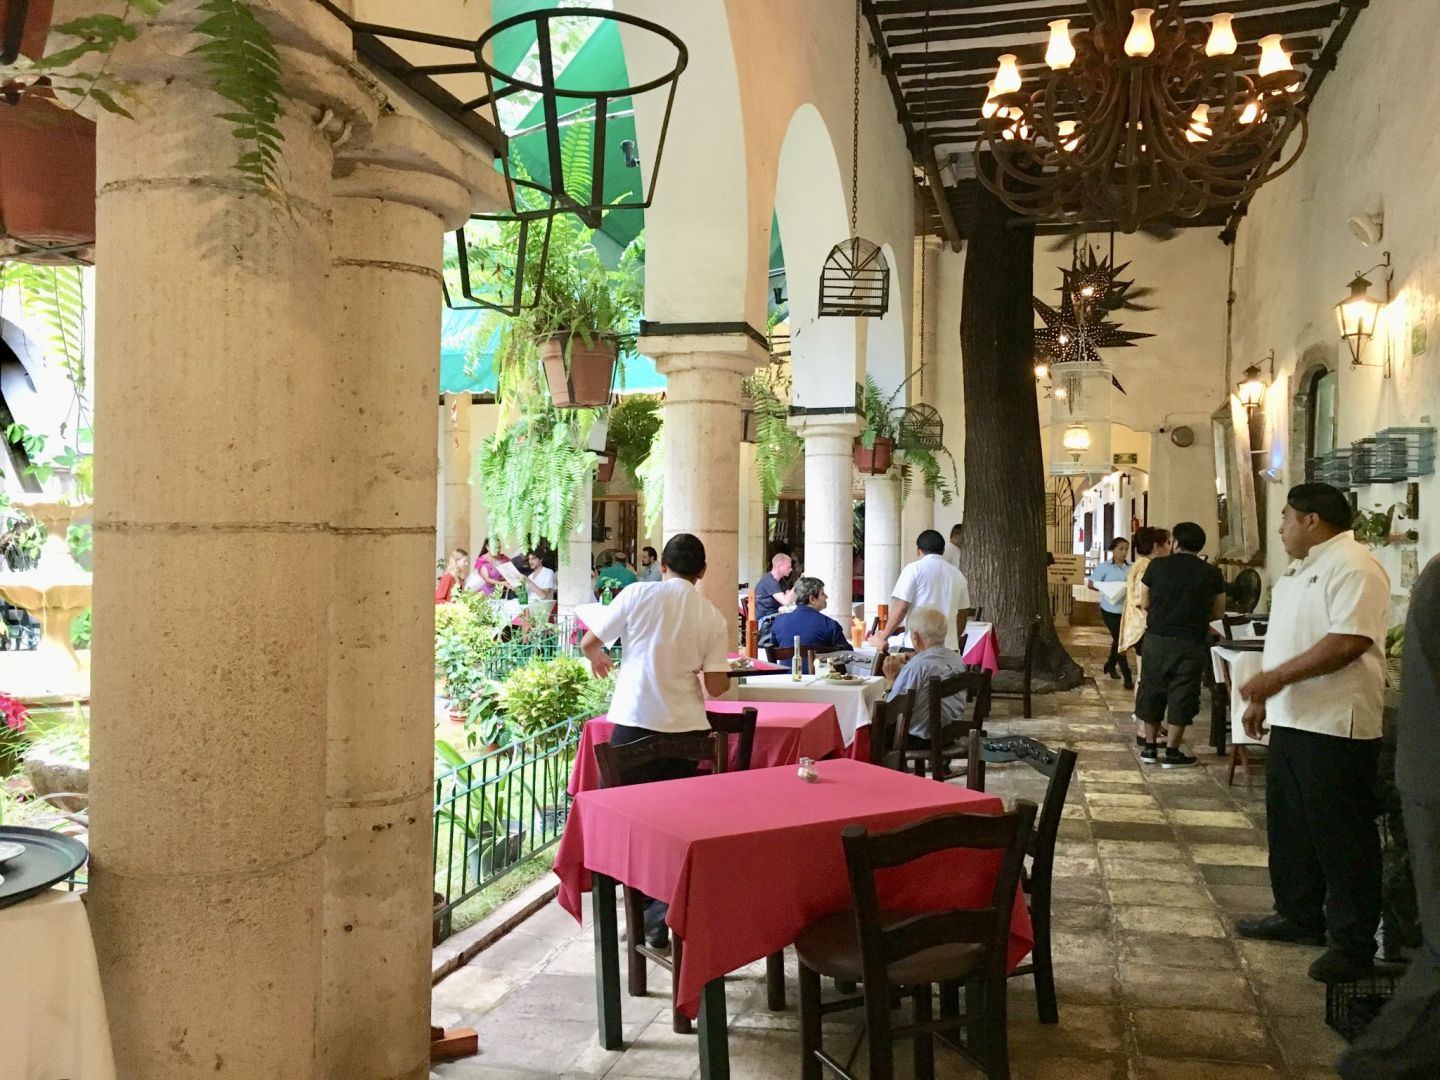 Best food in Mexico is in Valladolid